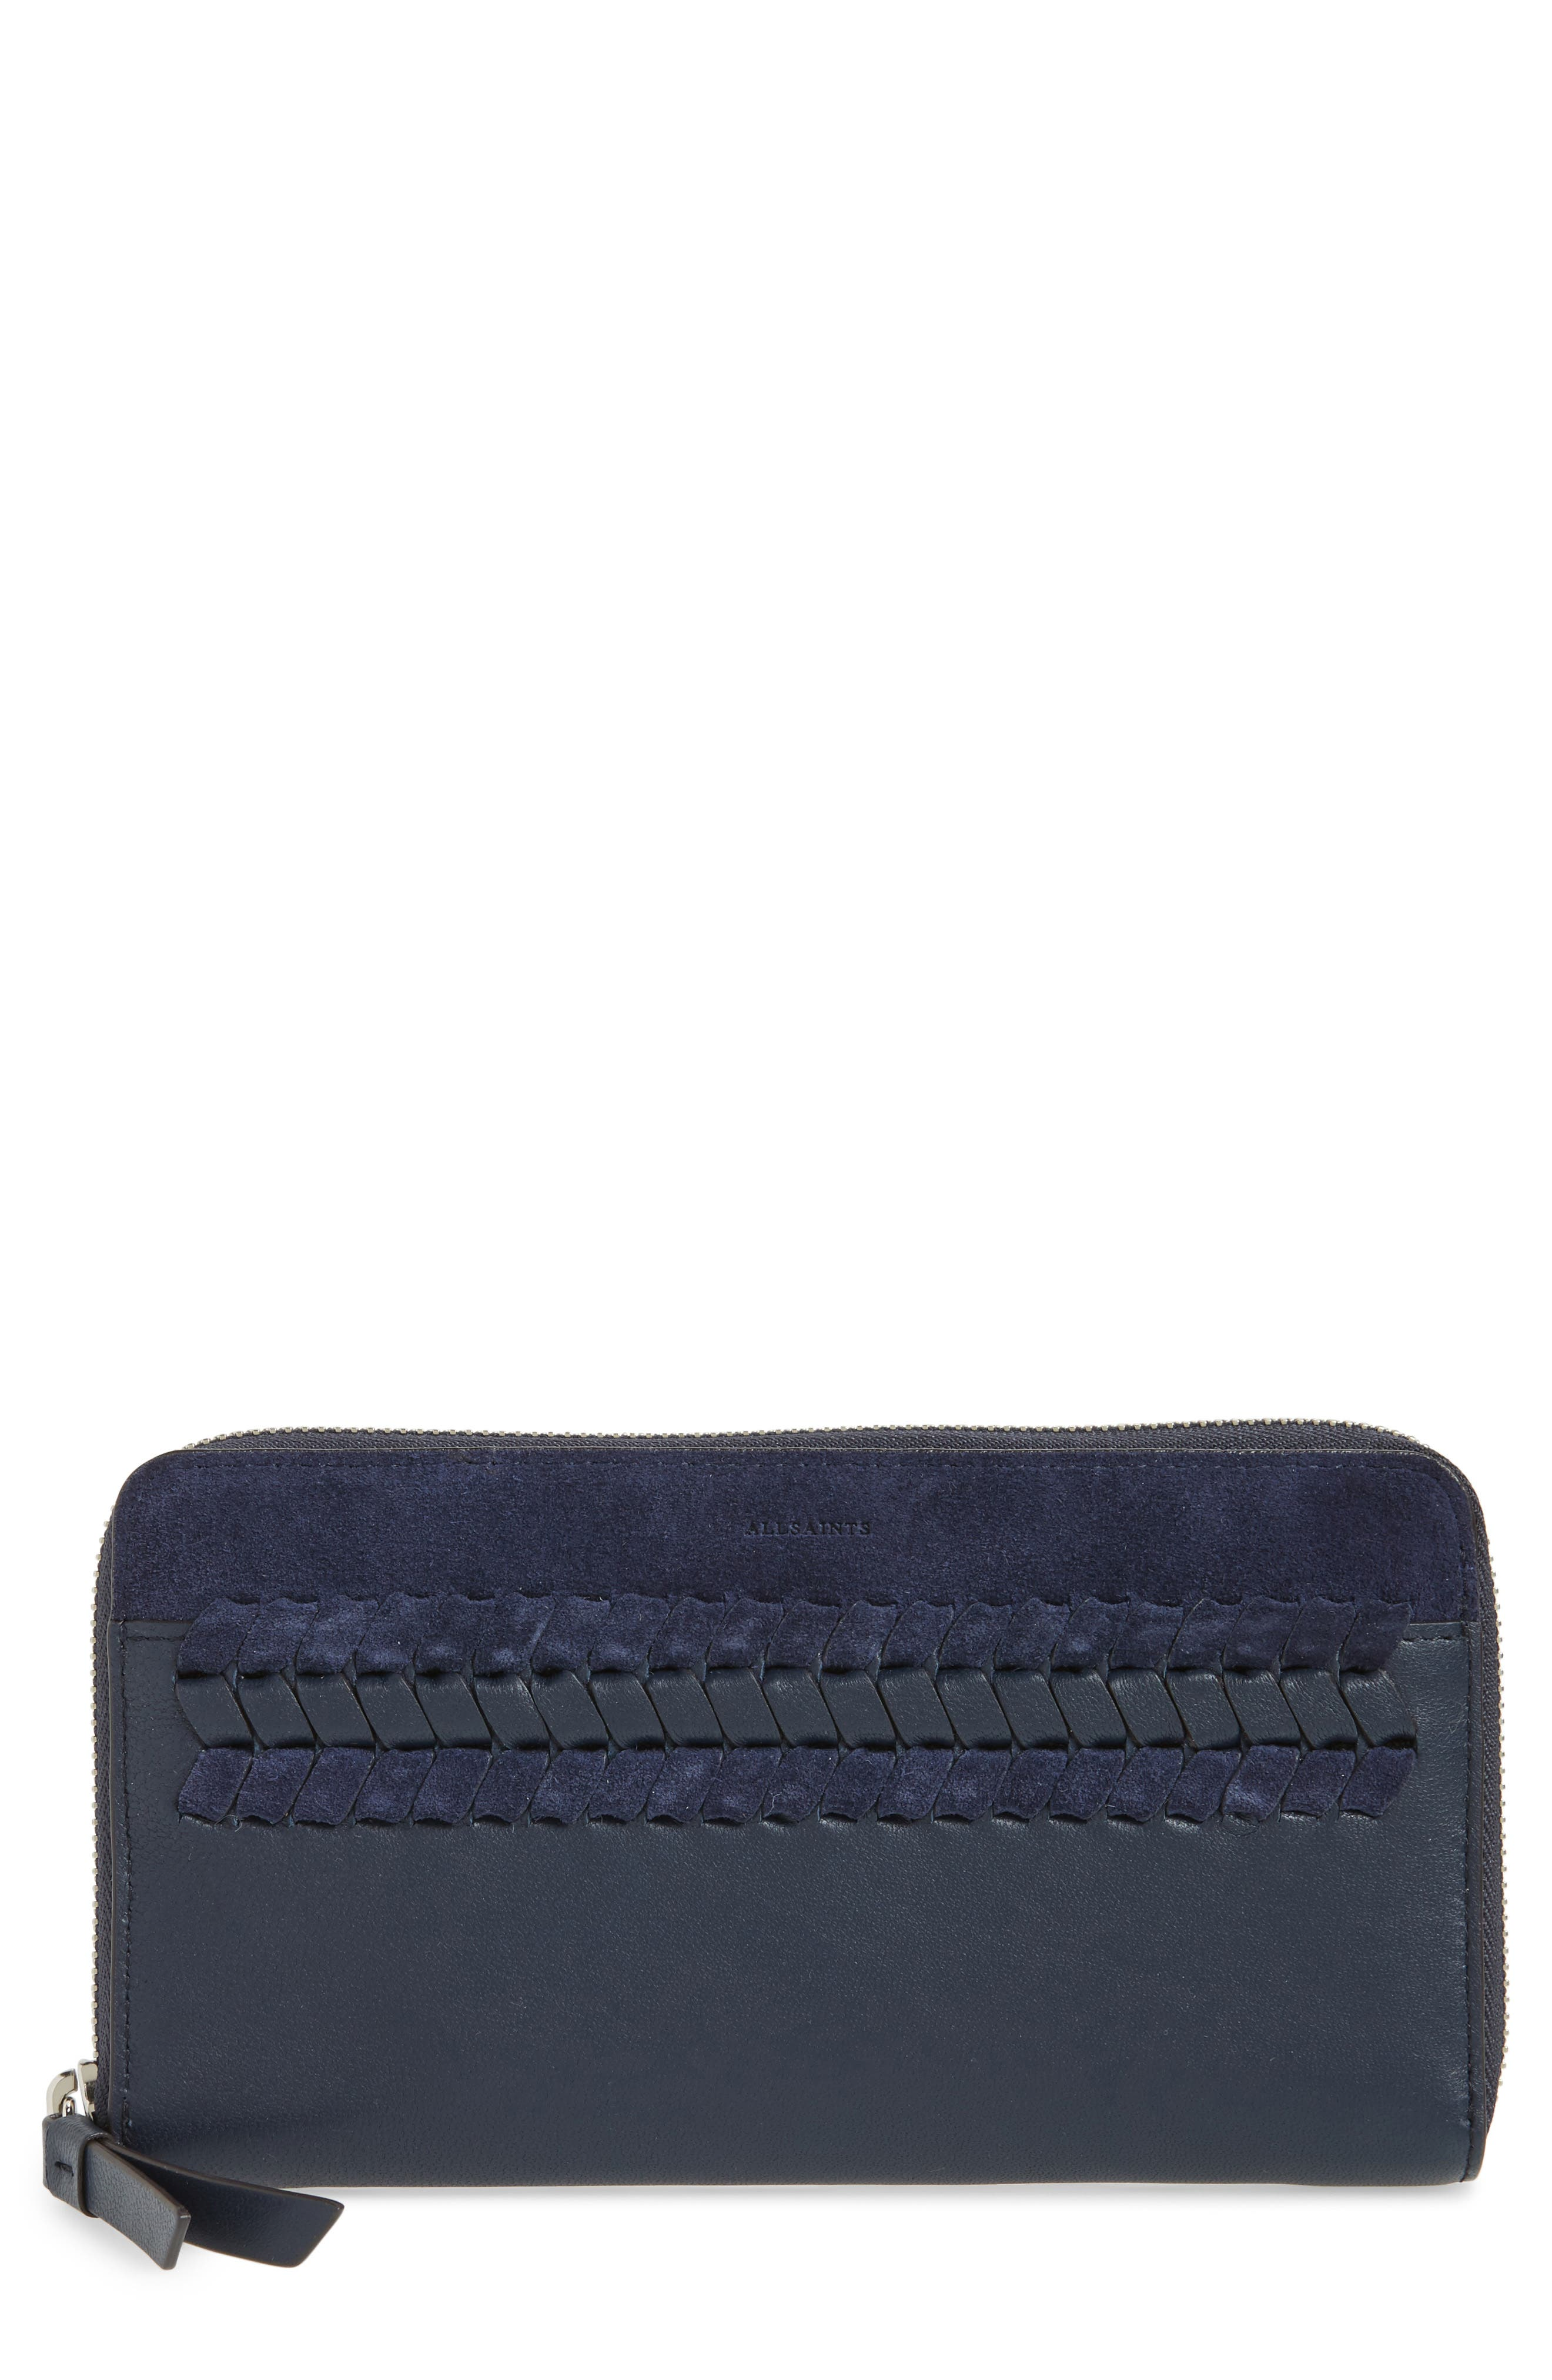 Alternate Image 1 Selected - ALLSAINTS Ray Whip Leather & Suede Wallet